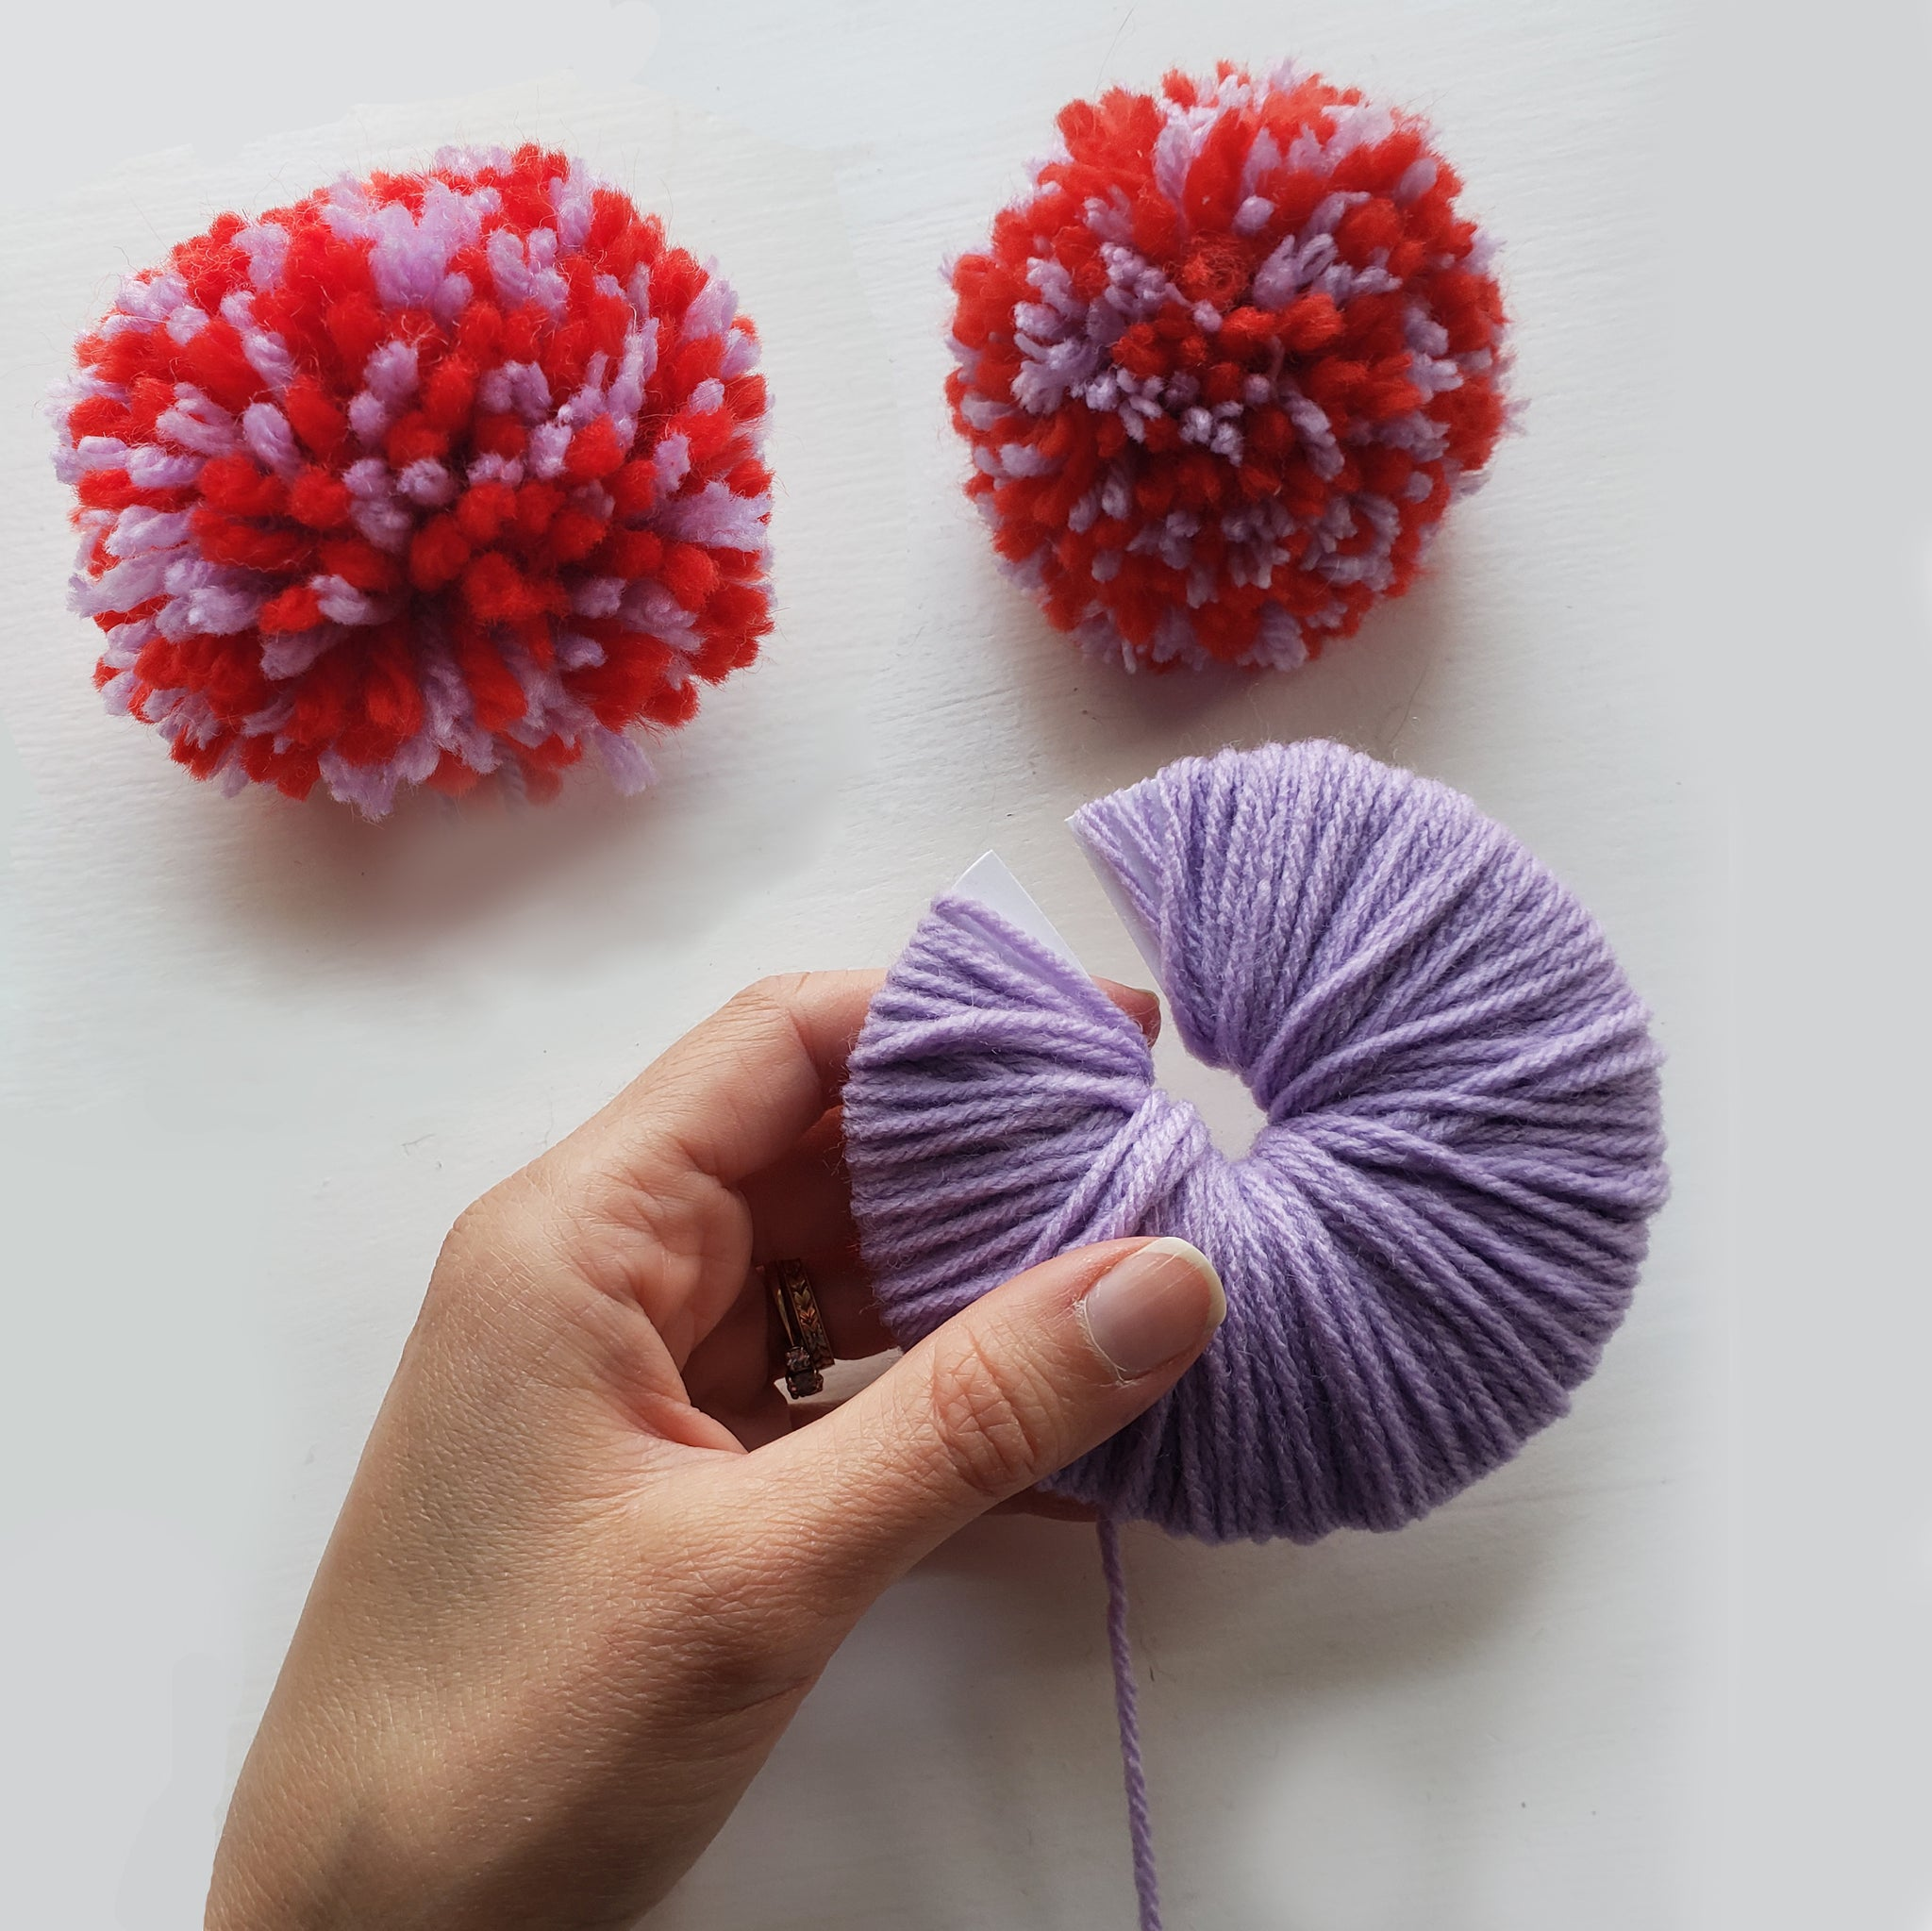 How to make a yarn pom pom